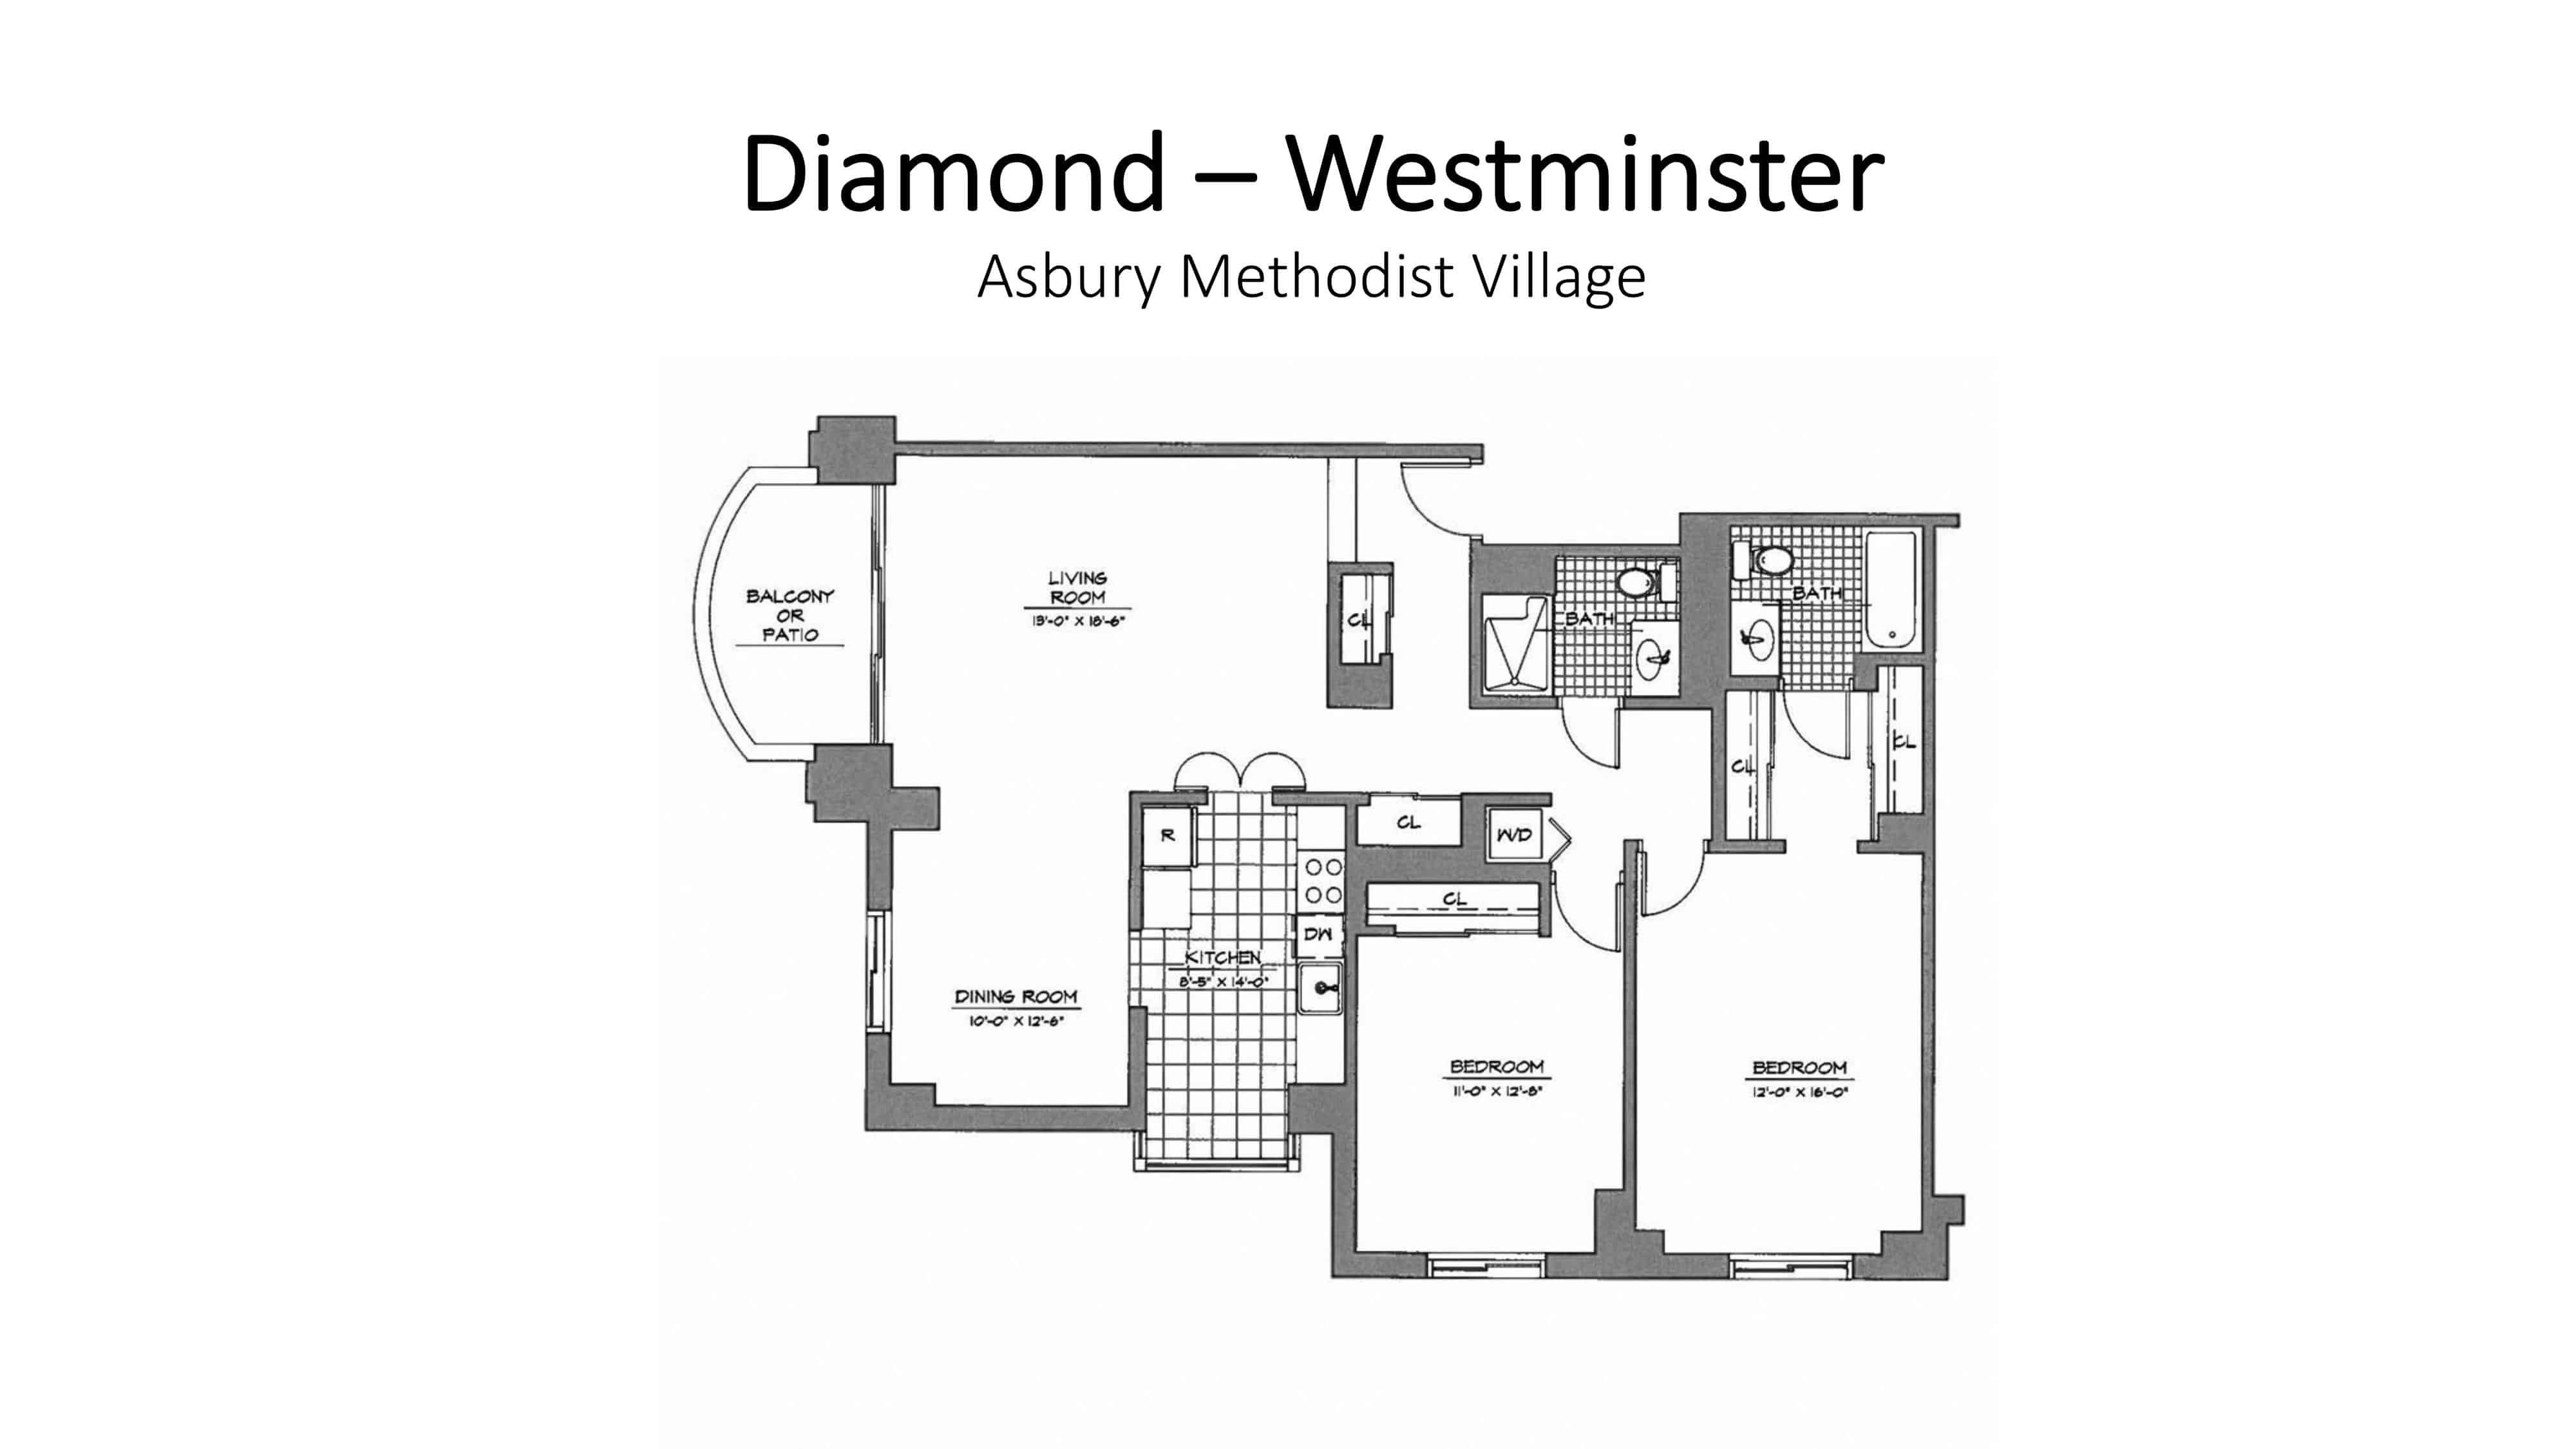 Asbury Methodist Village Diamond - Westminster